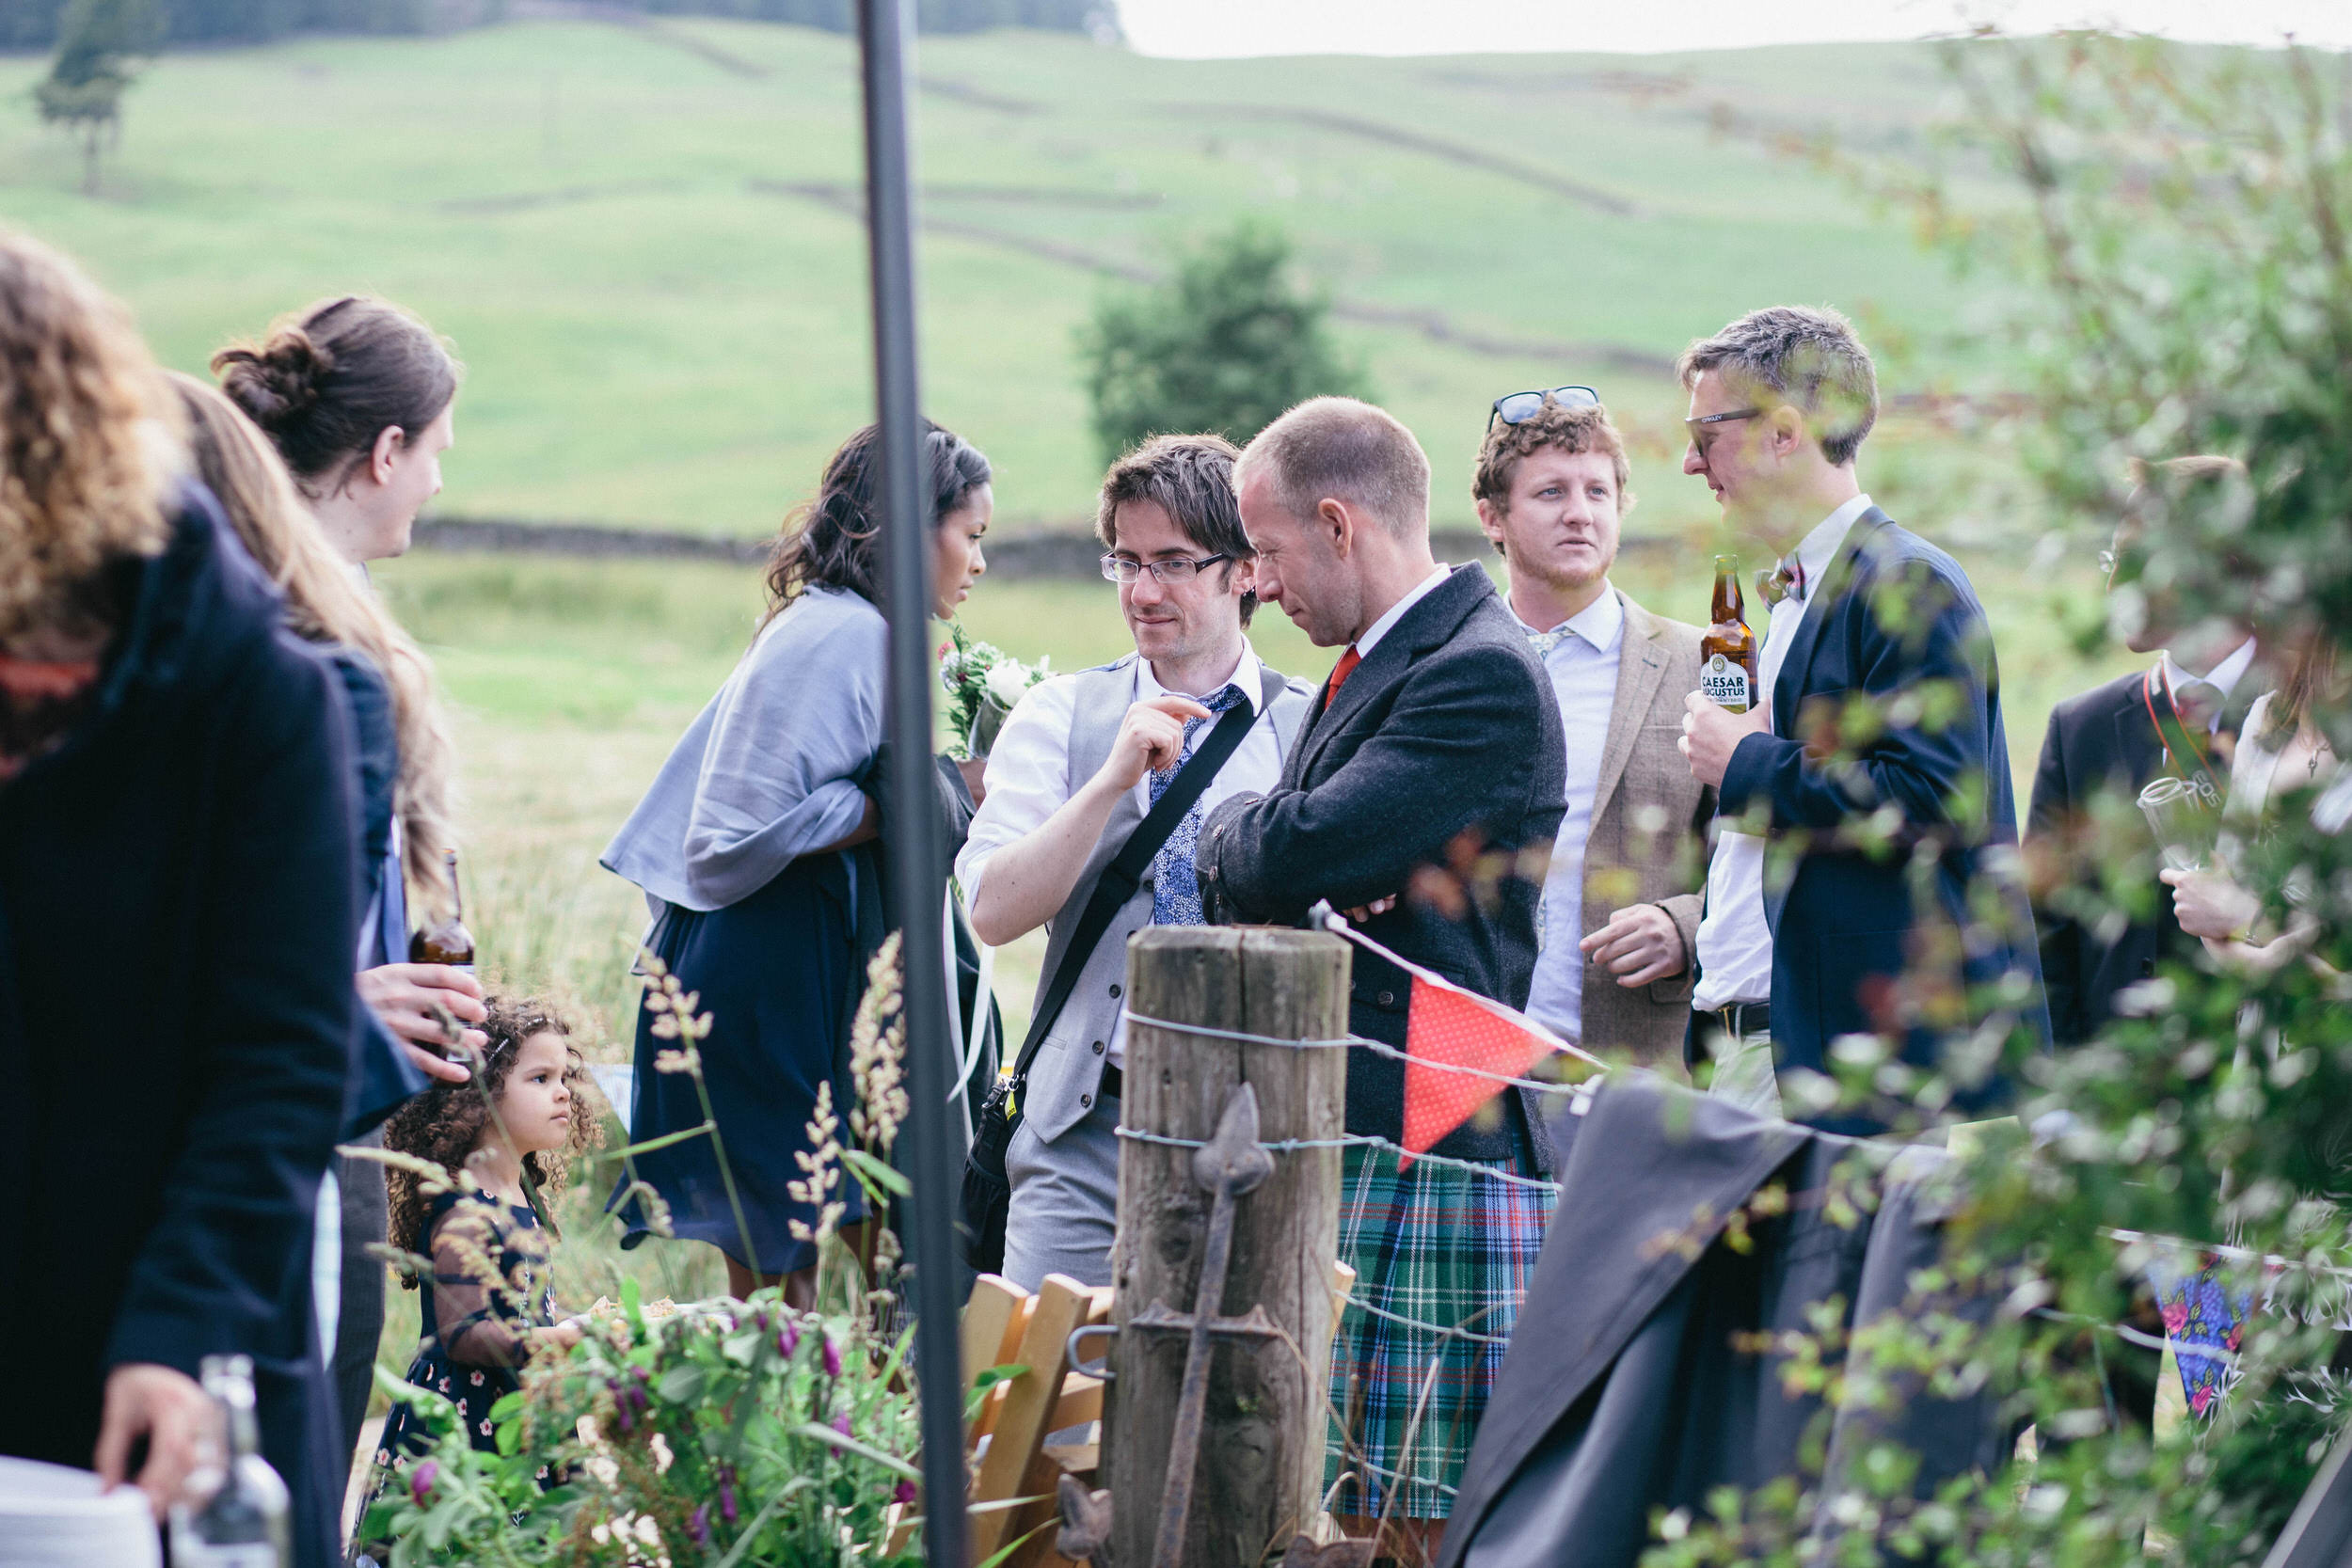 Alternative Quirky Wedding Photographer Scotland Borders Edinburgh 060.jpg